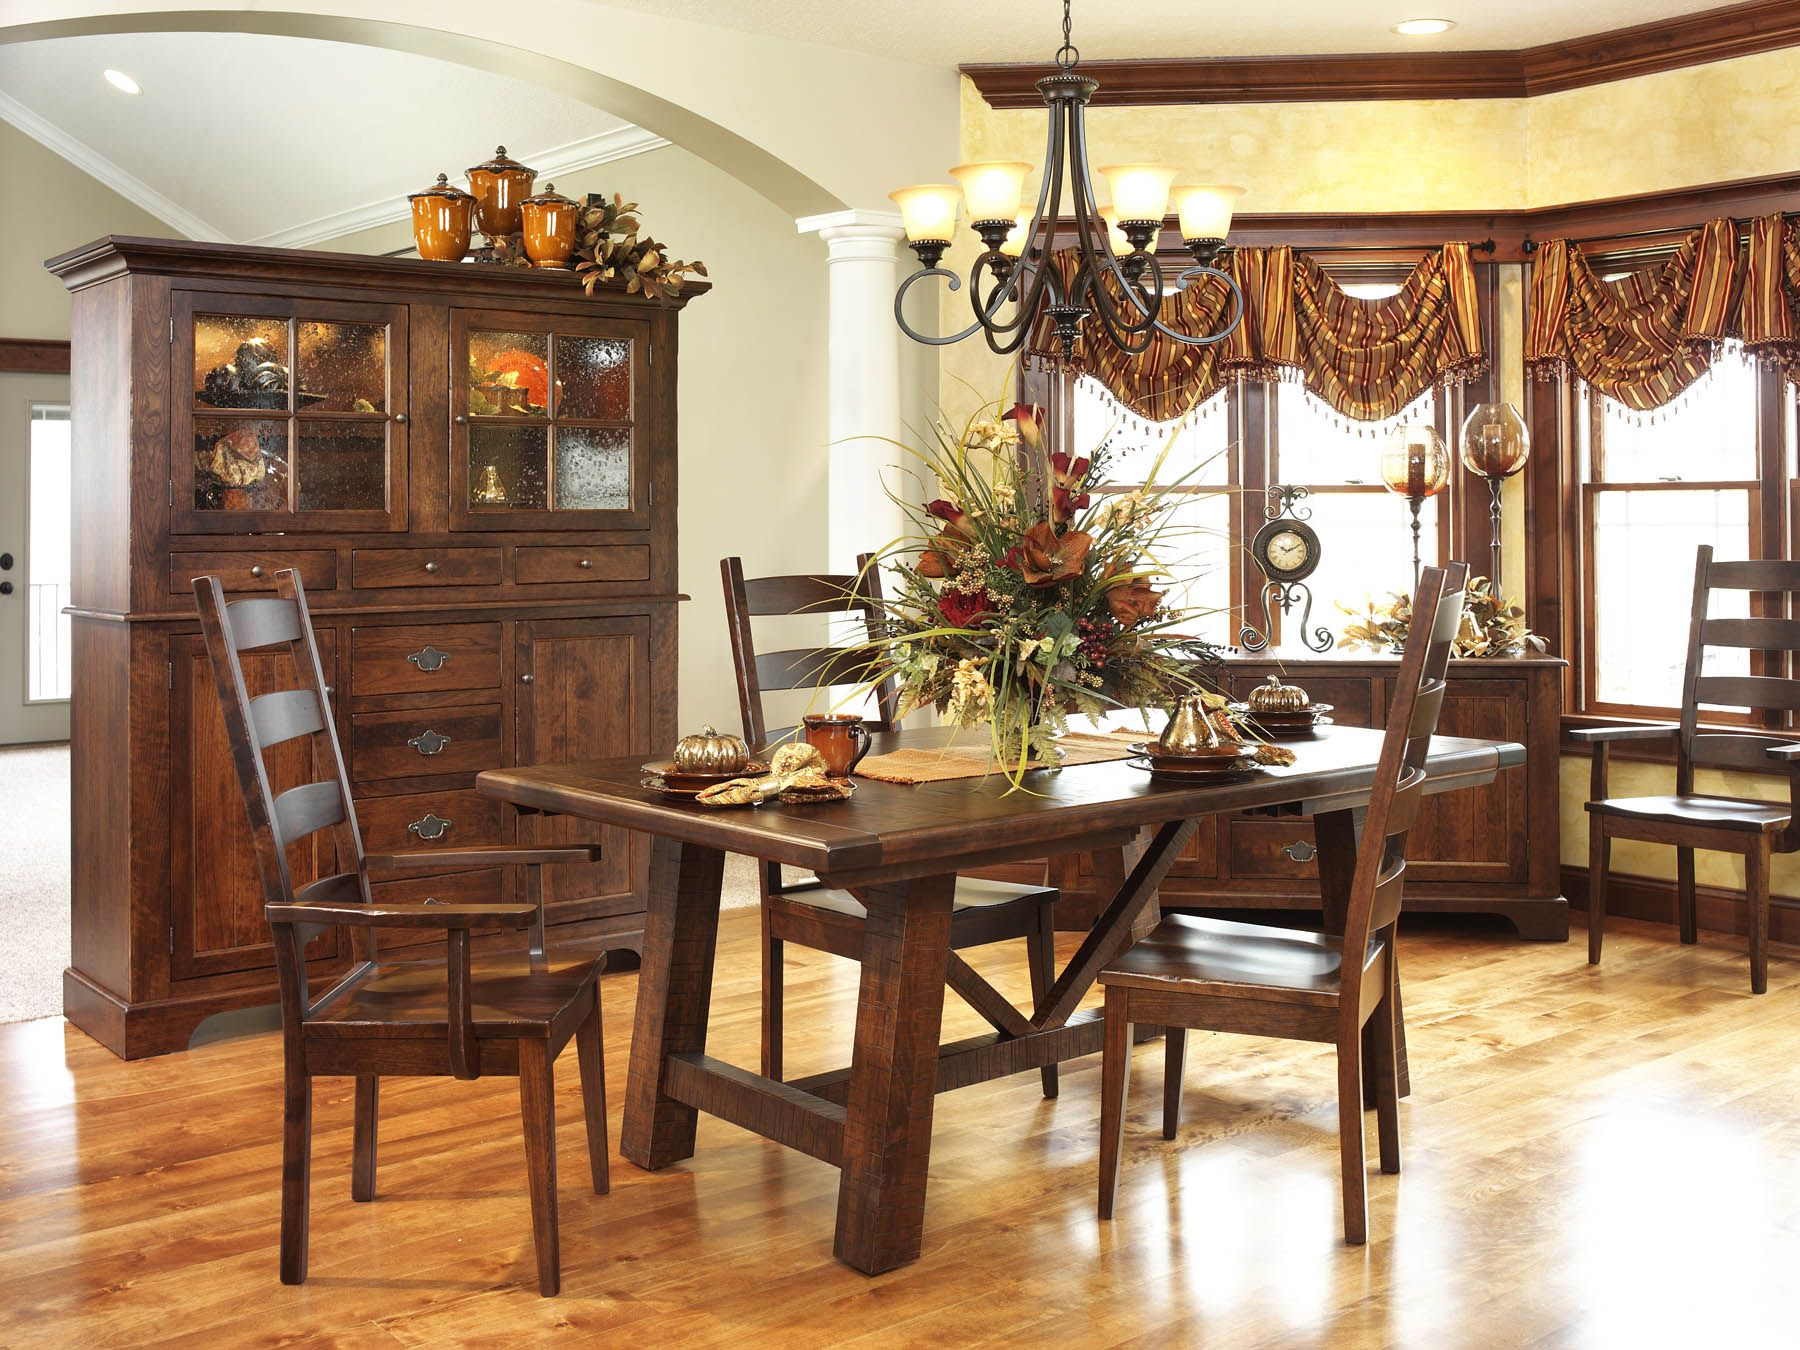 Restaurant Farmhouse Chicago Early American Country Farmhouse Dining Room Set Amish